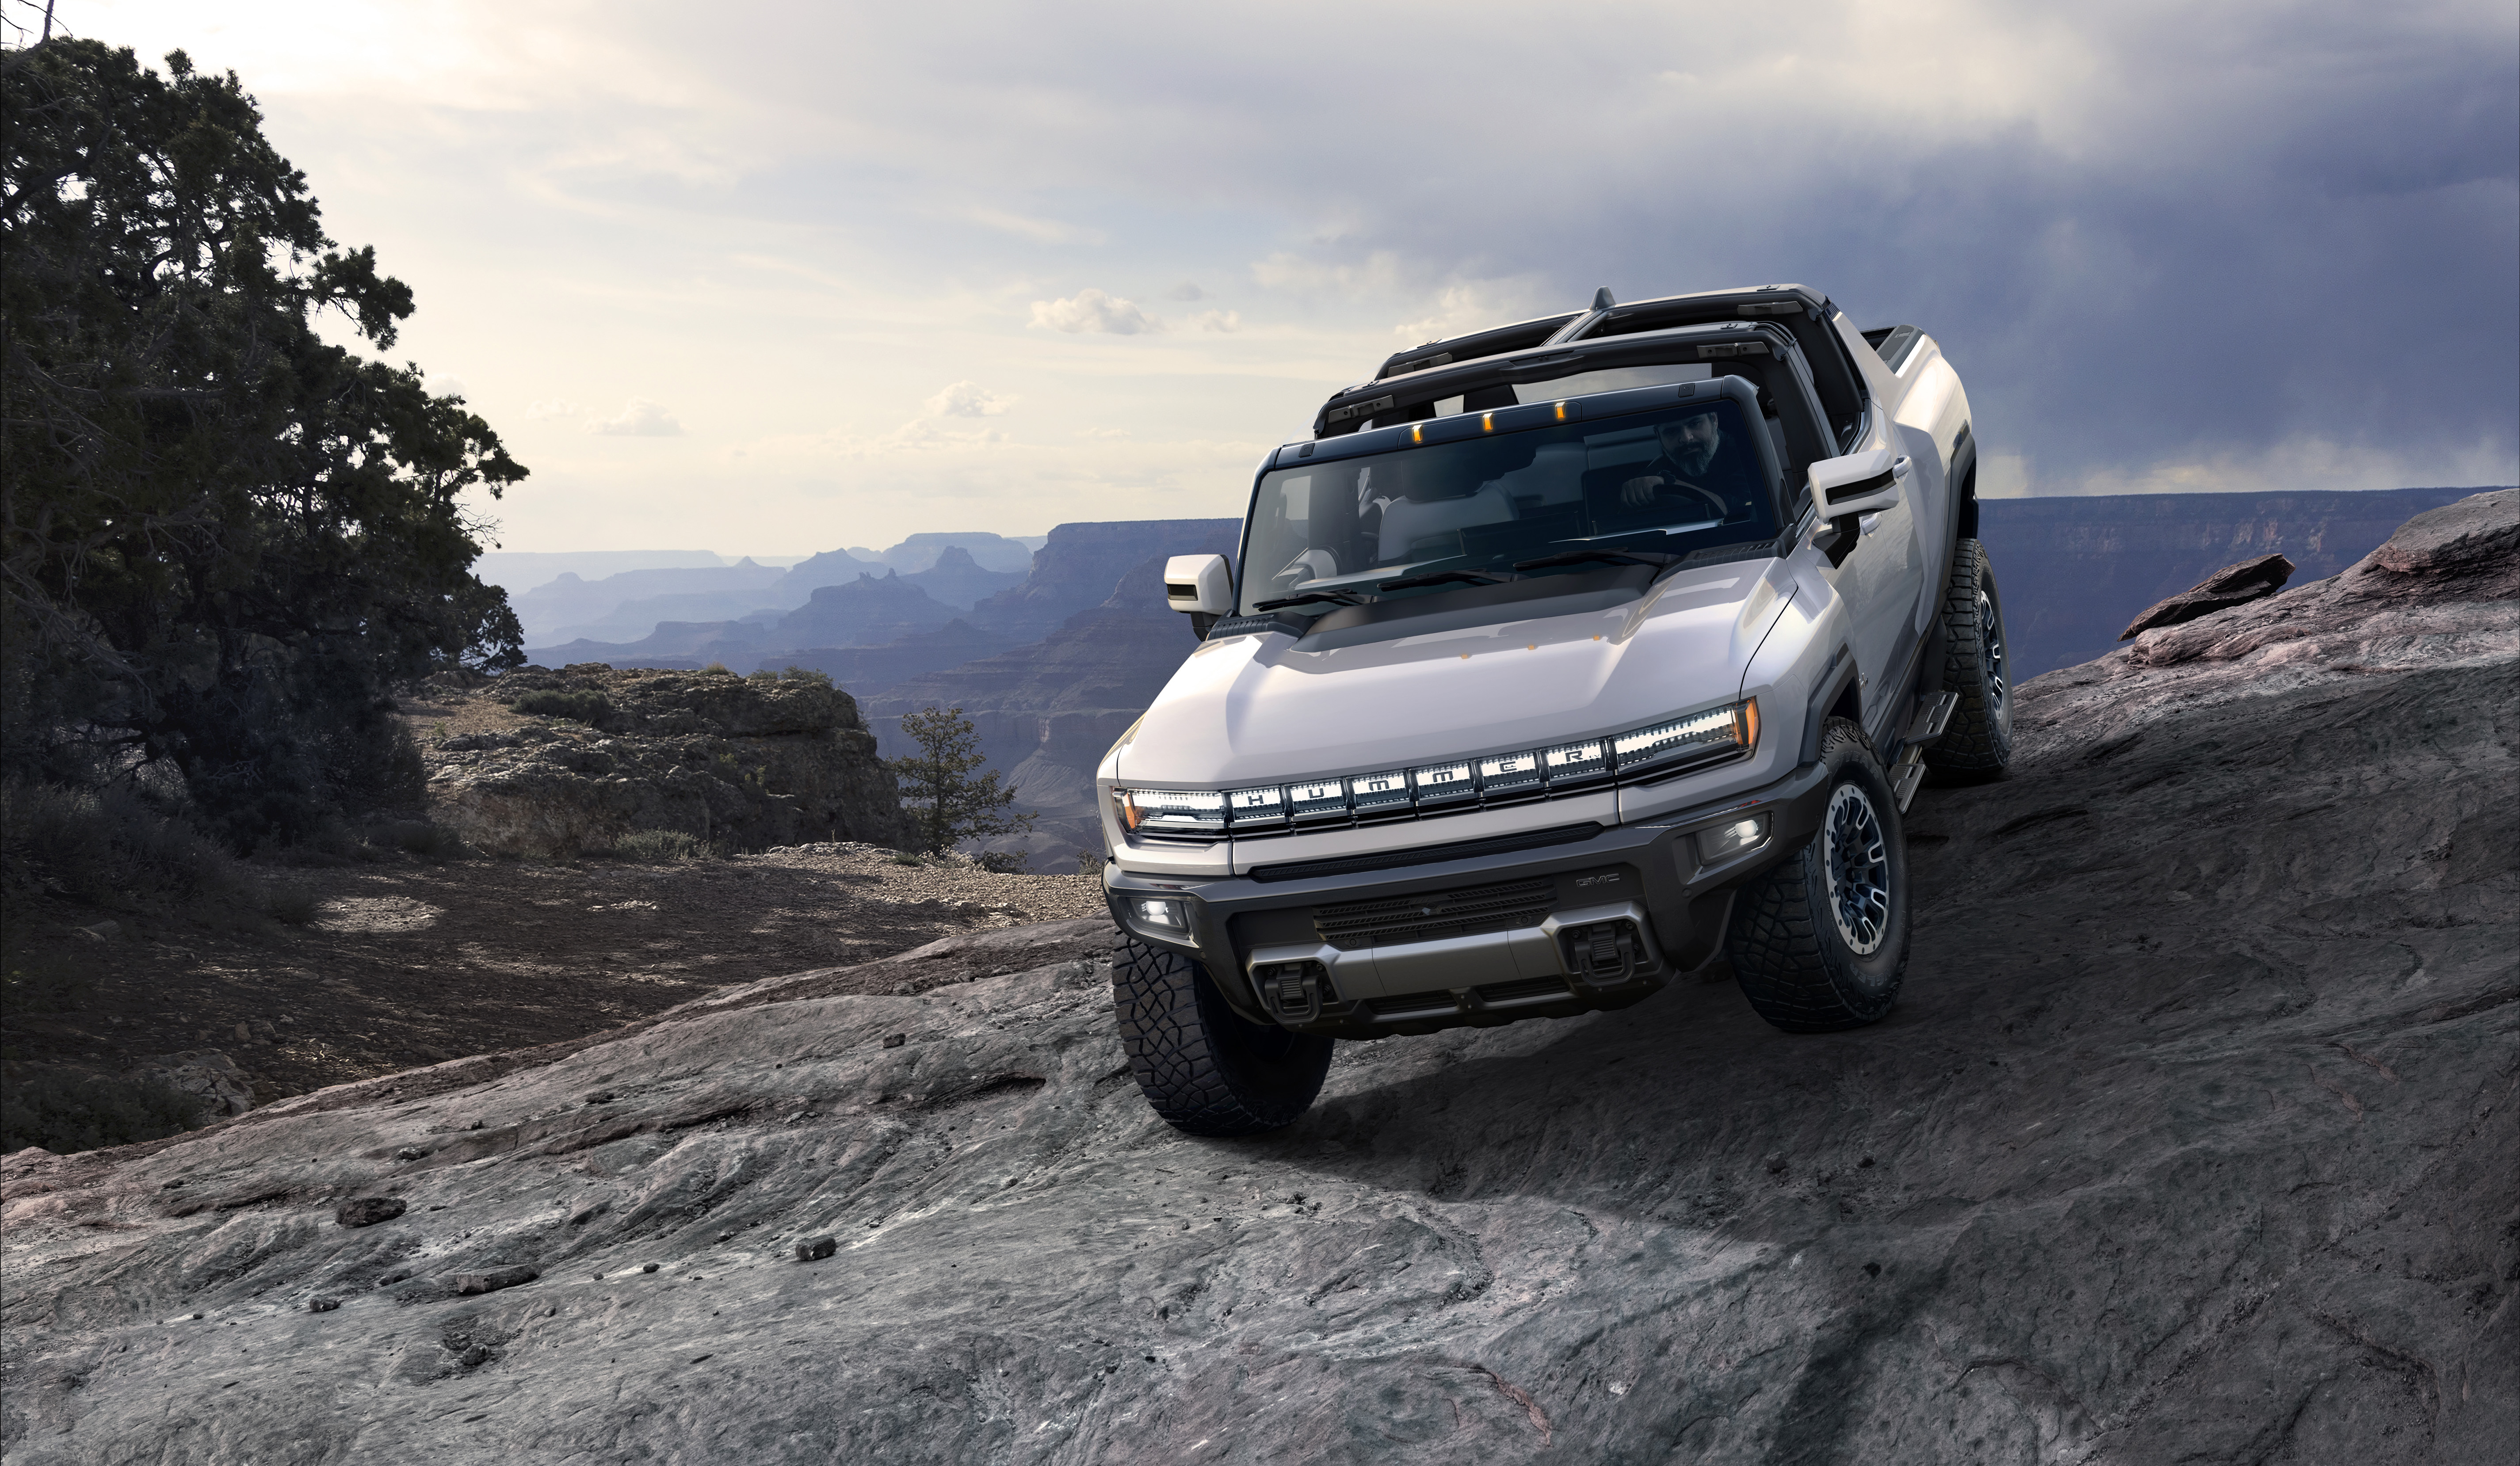 The 2022 GMC HUMMER EV is a first-of-its kind supertruck developed to forge new paths with zero emissions.